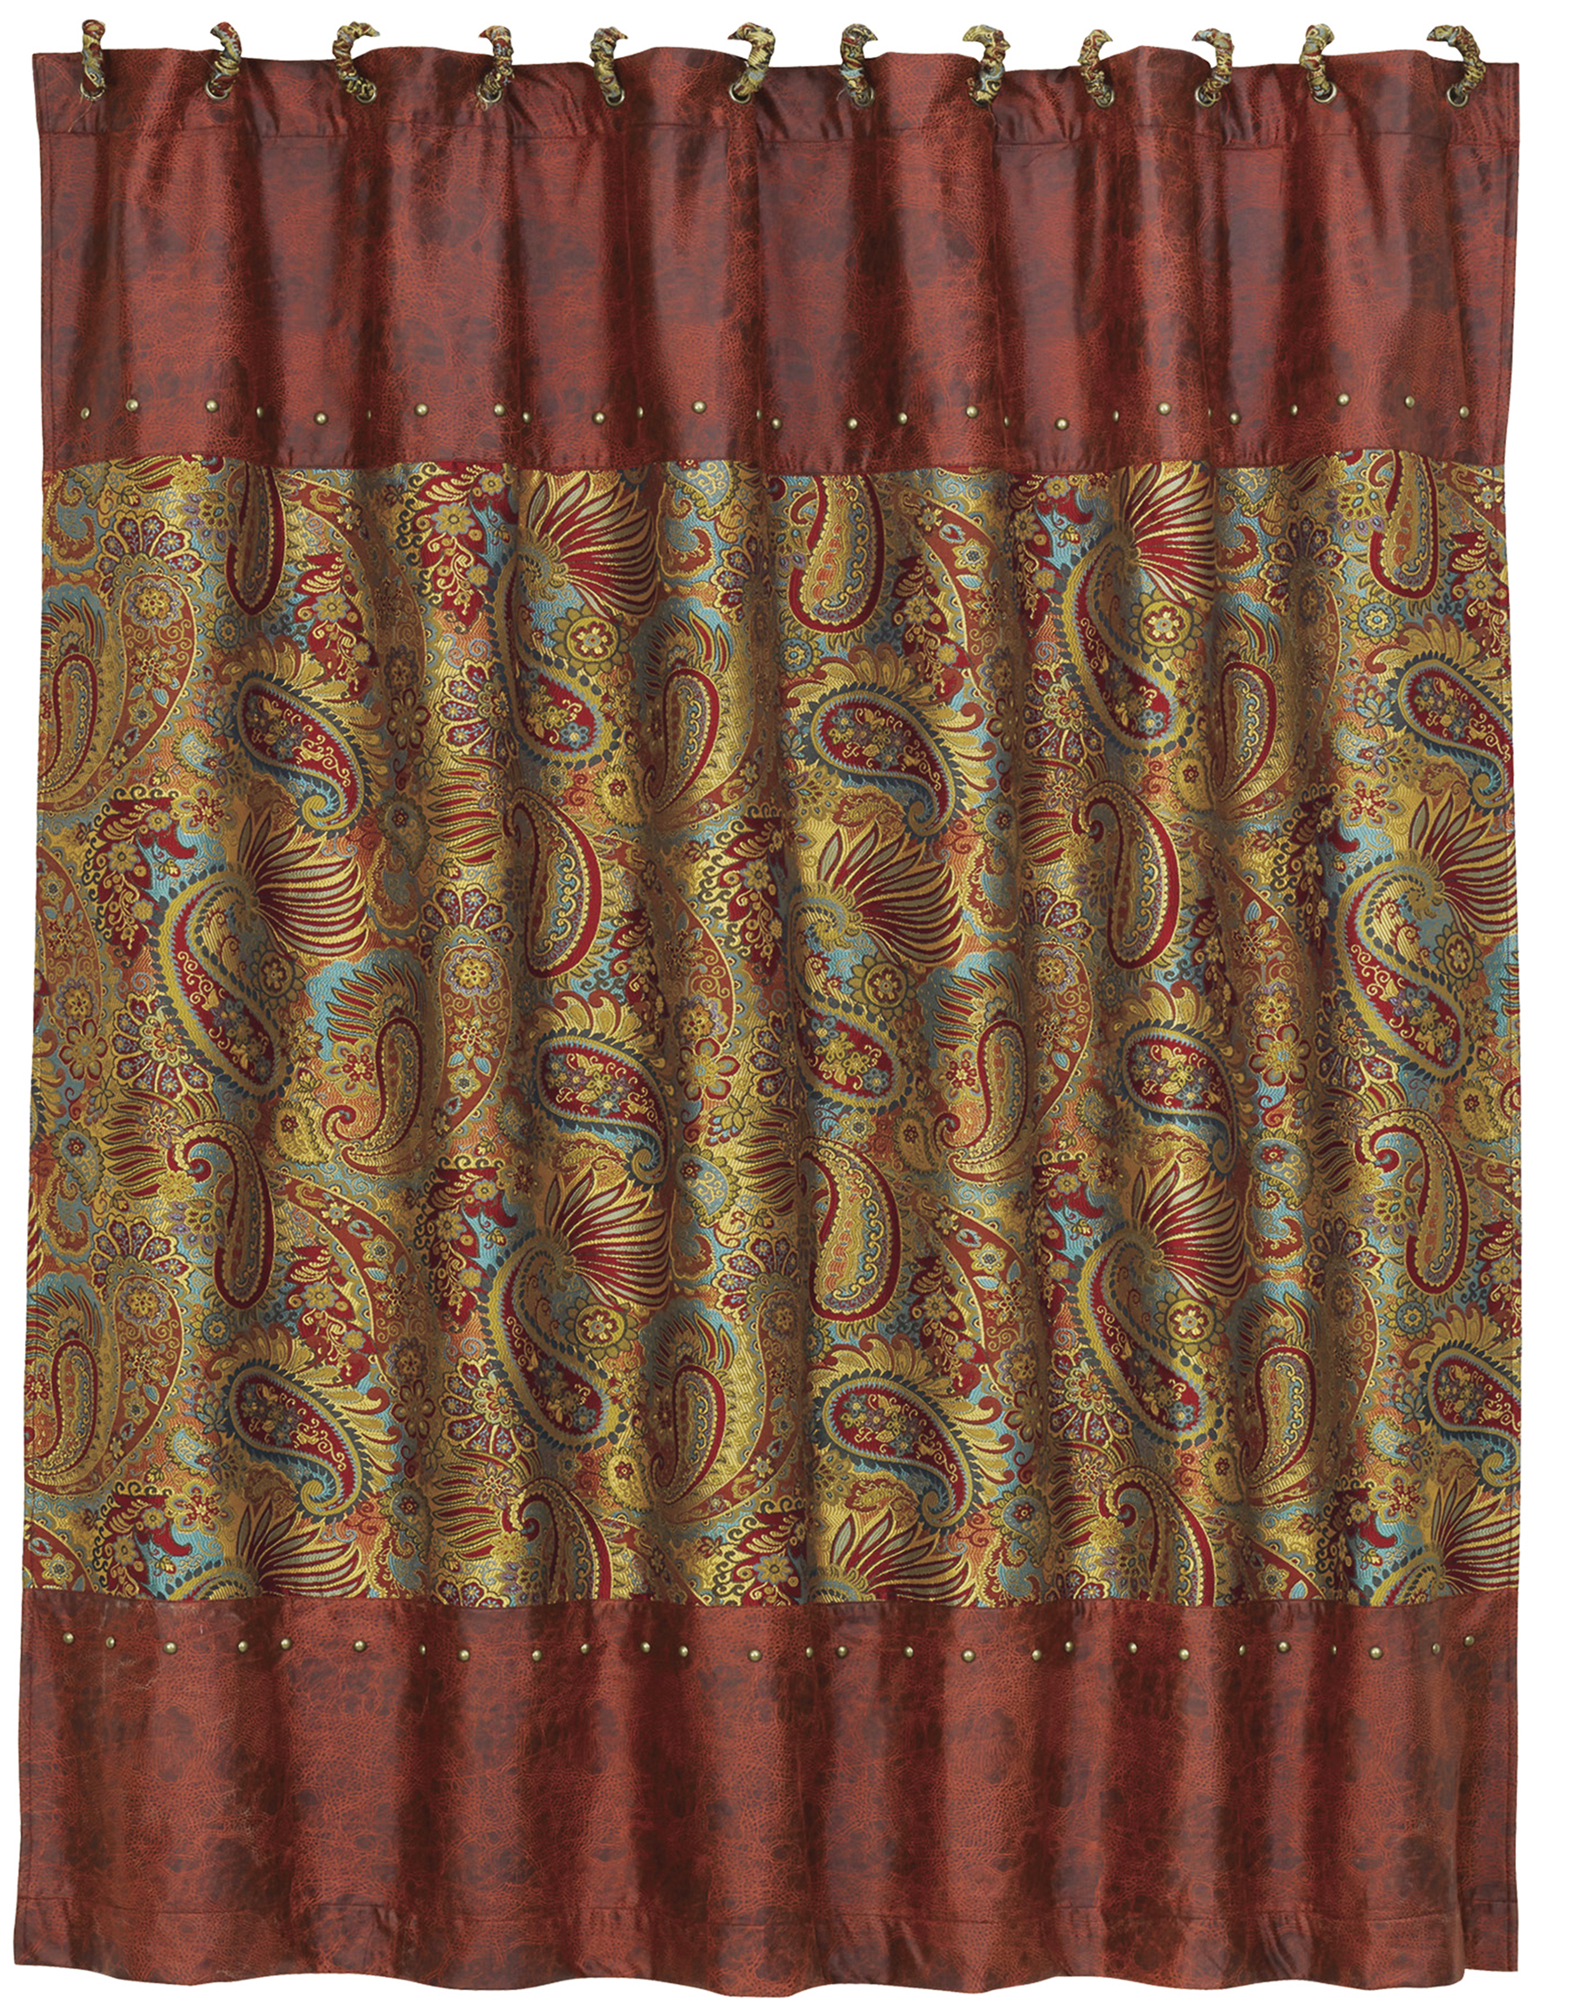 WS4287SC - Paisley Shower Curtain - Western Bedding by HiEnd Accents